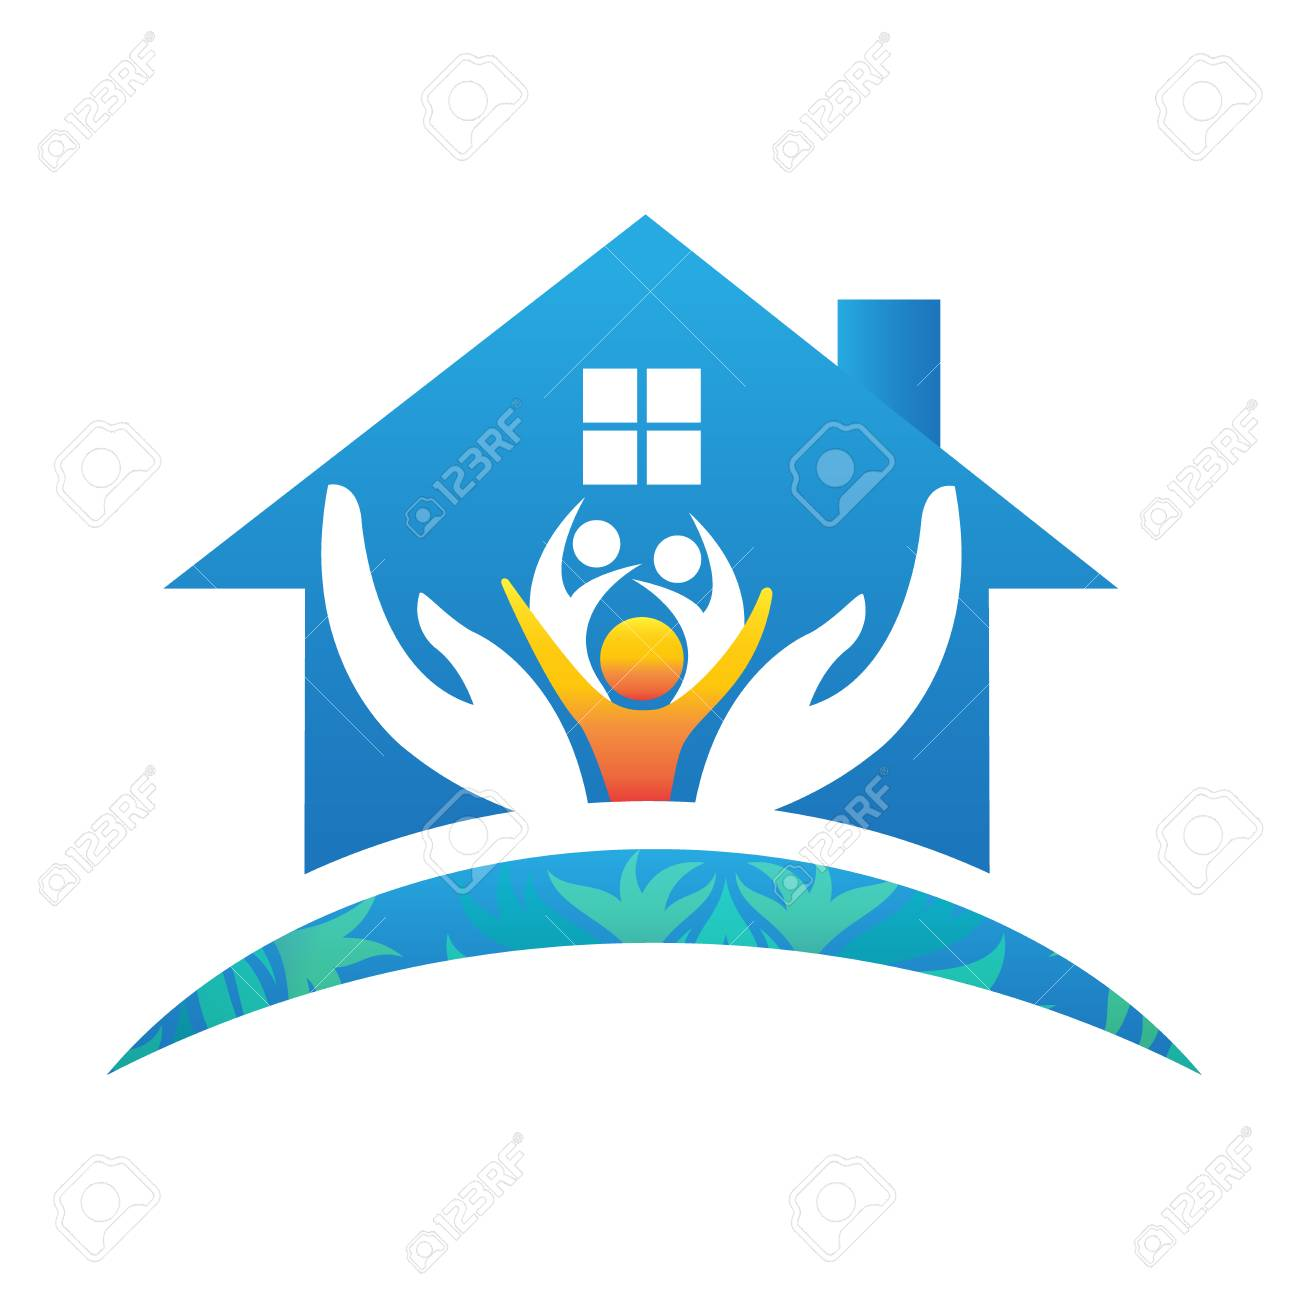 family house people logo vector image royalty free cliparts vectors